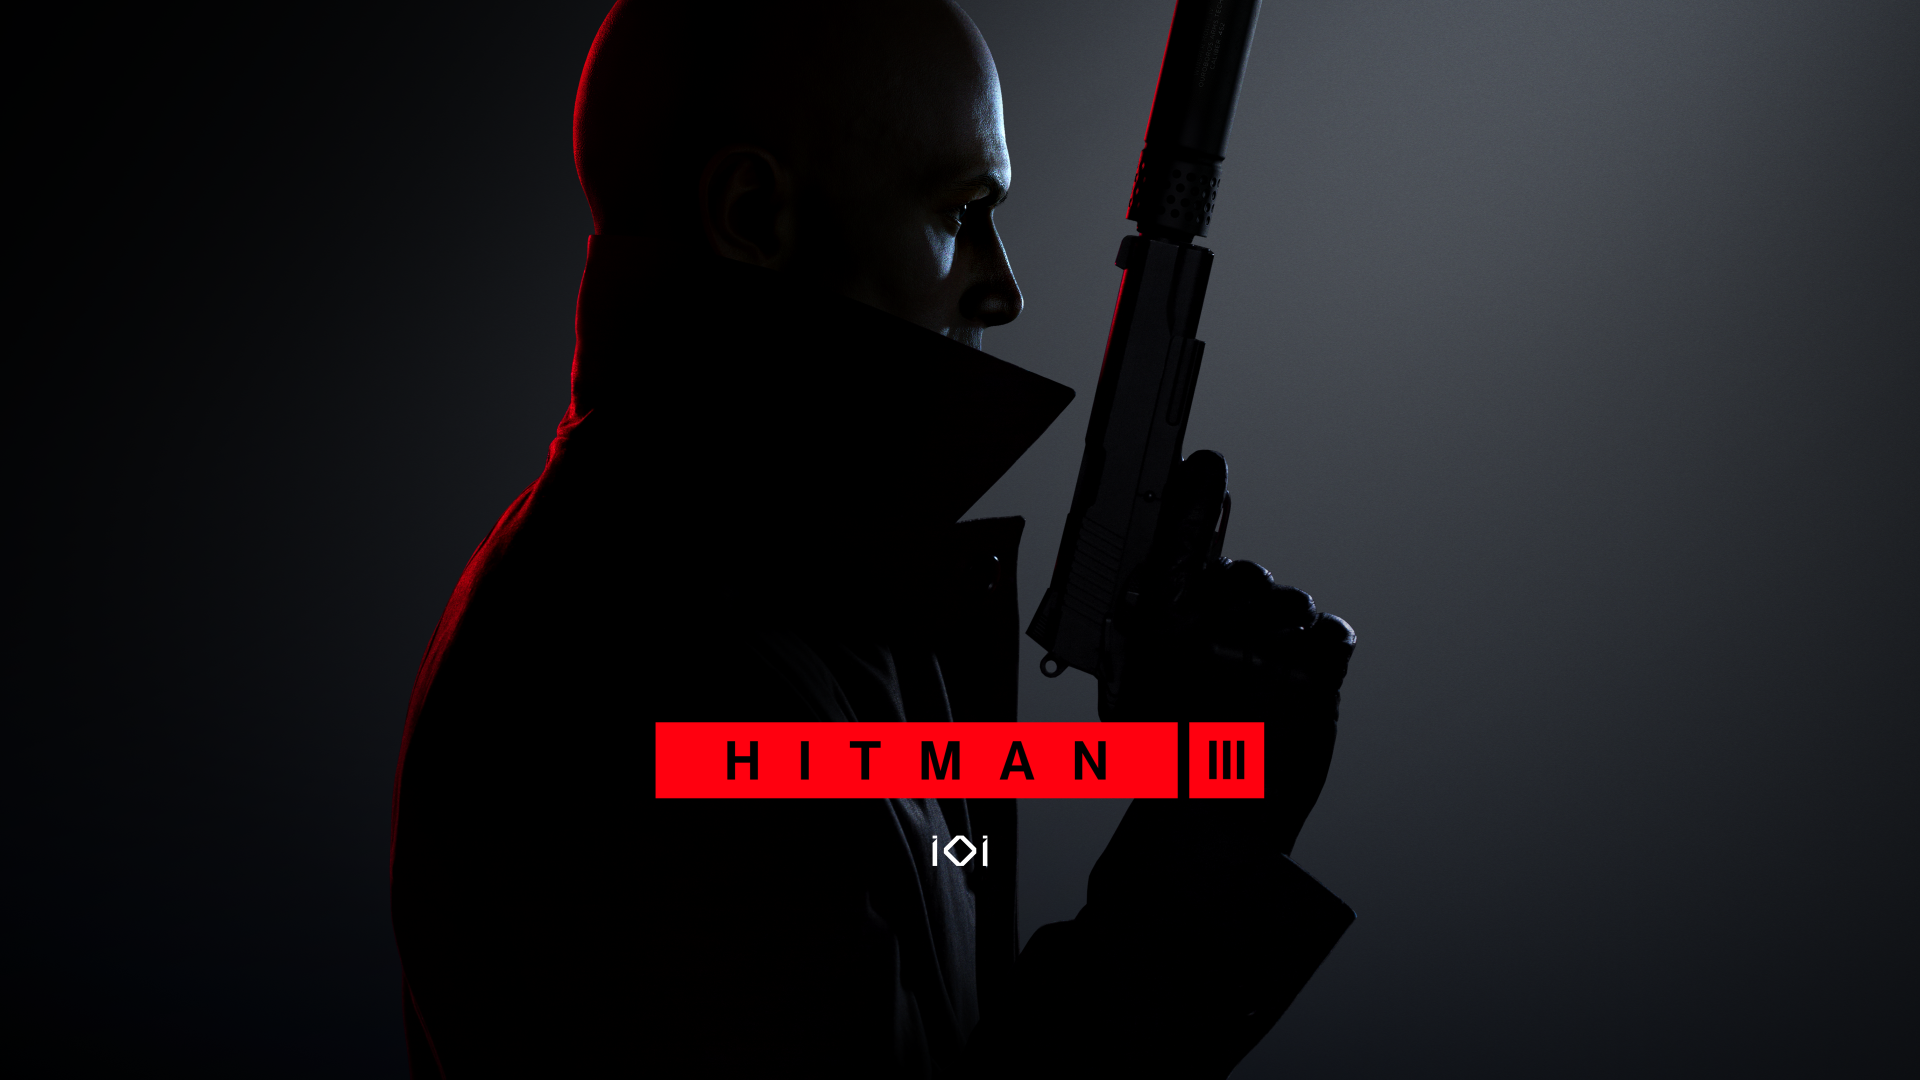 Hitman 3 - PS4 / PS5 - Wallpapers